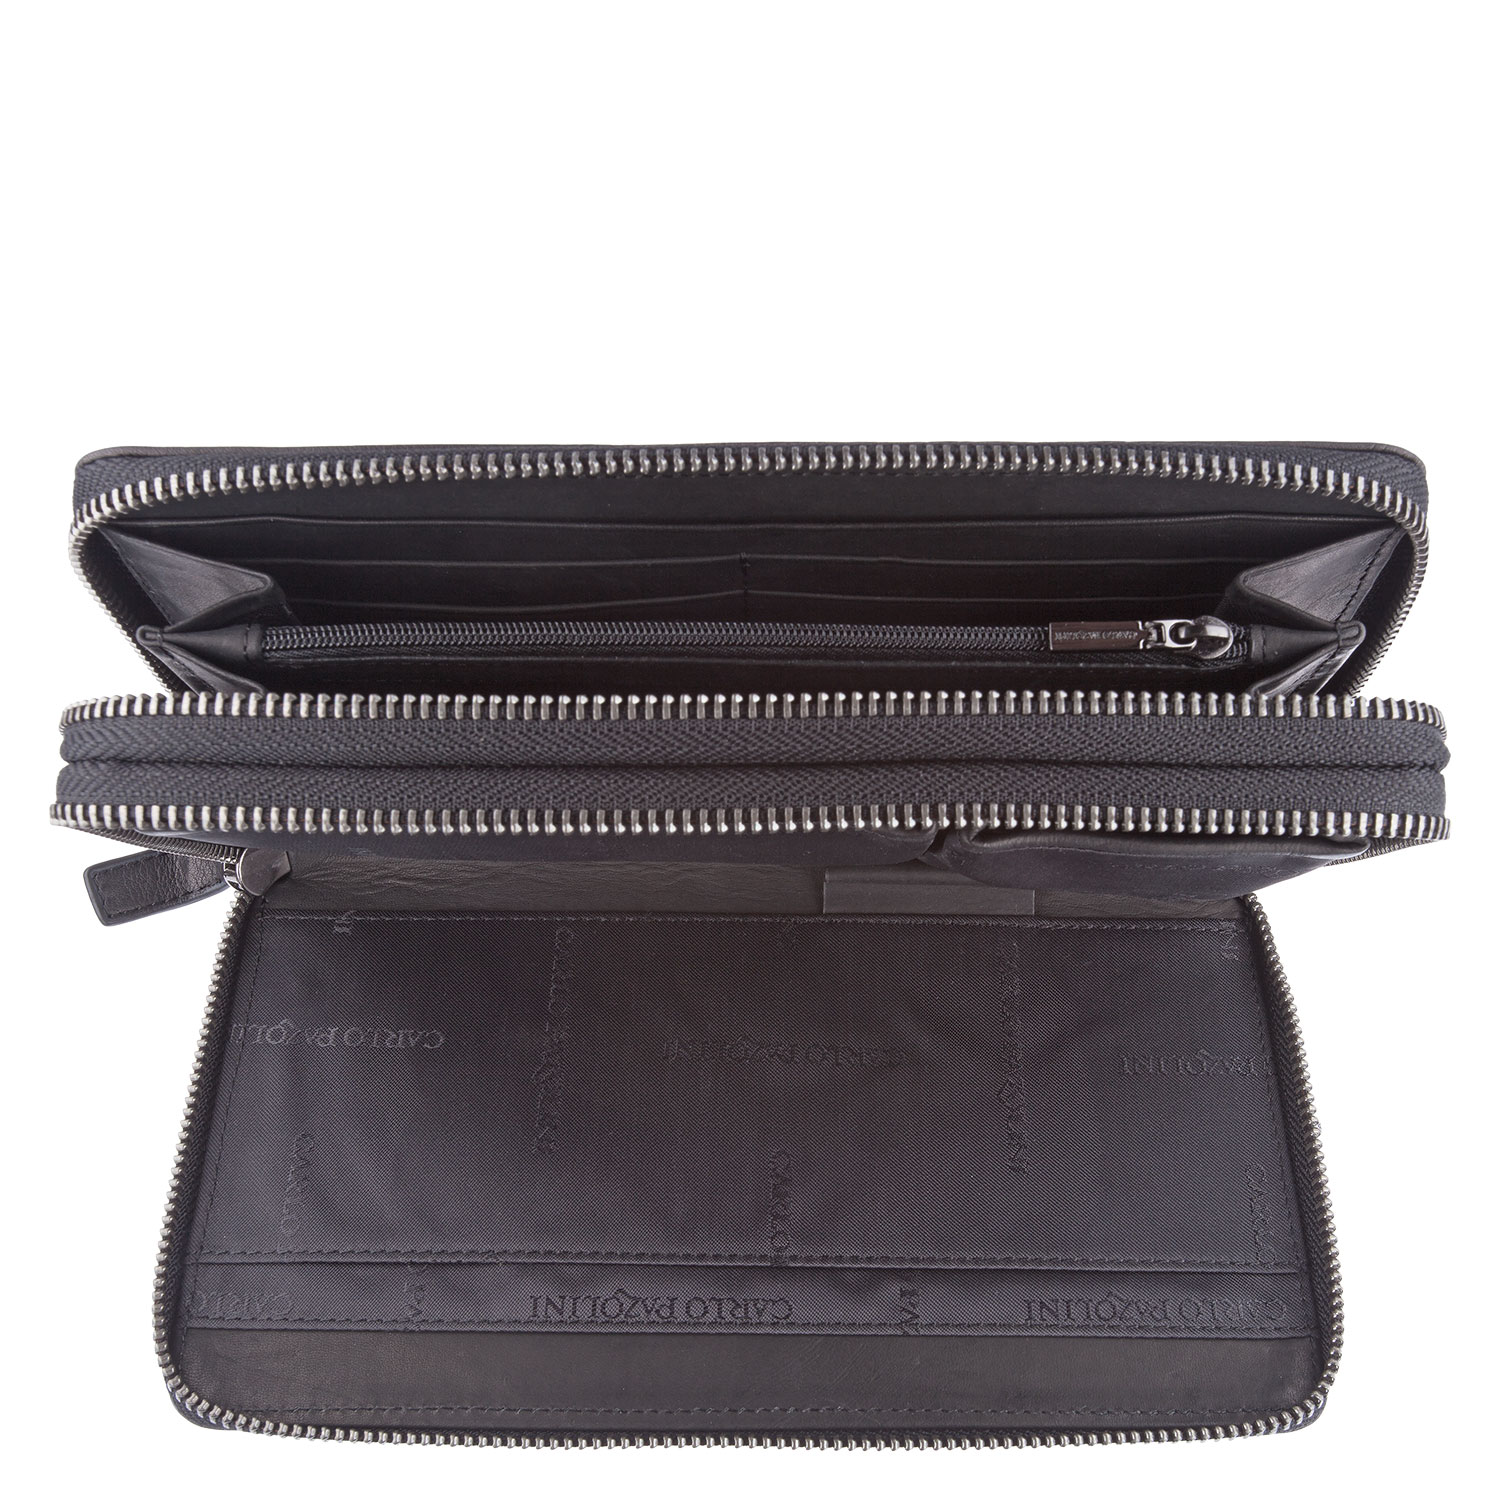 Travel wallet CARLO PAZOLINI BS-N1933-1R3